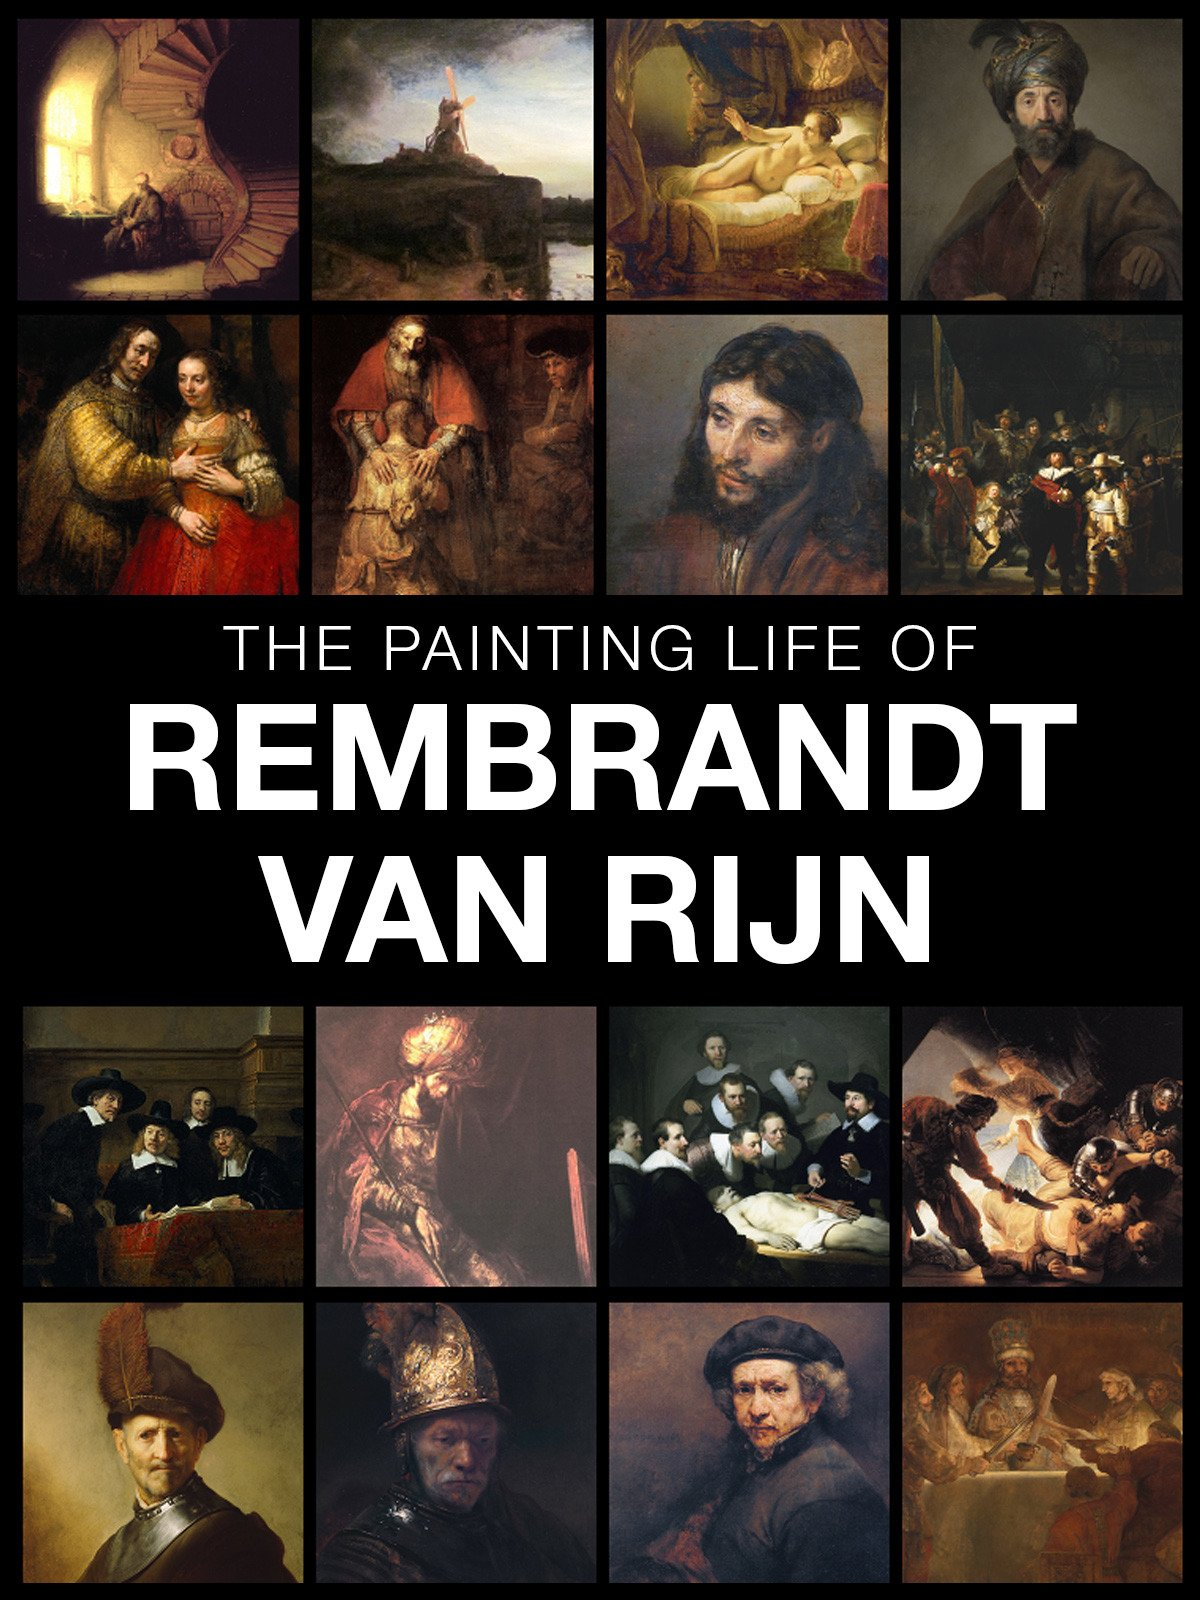 The painting life of Rembrandt van Rijn